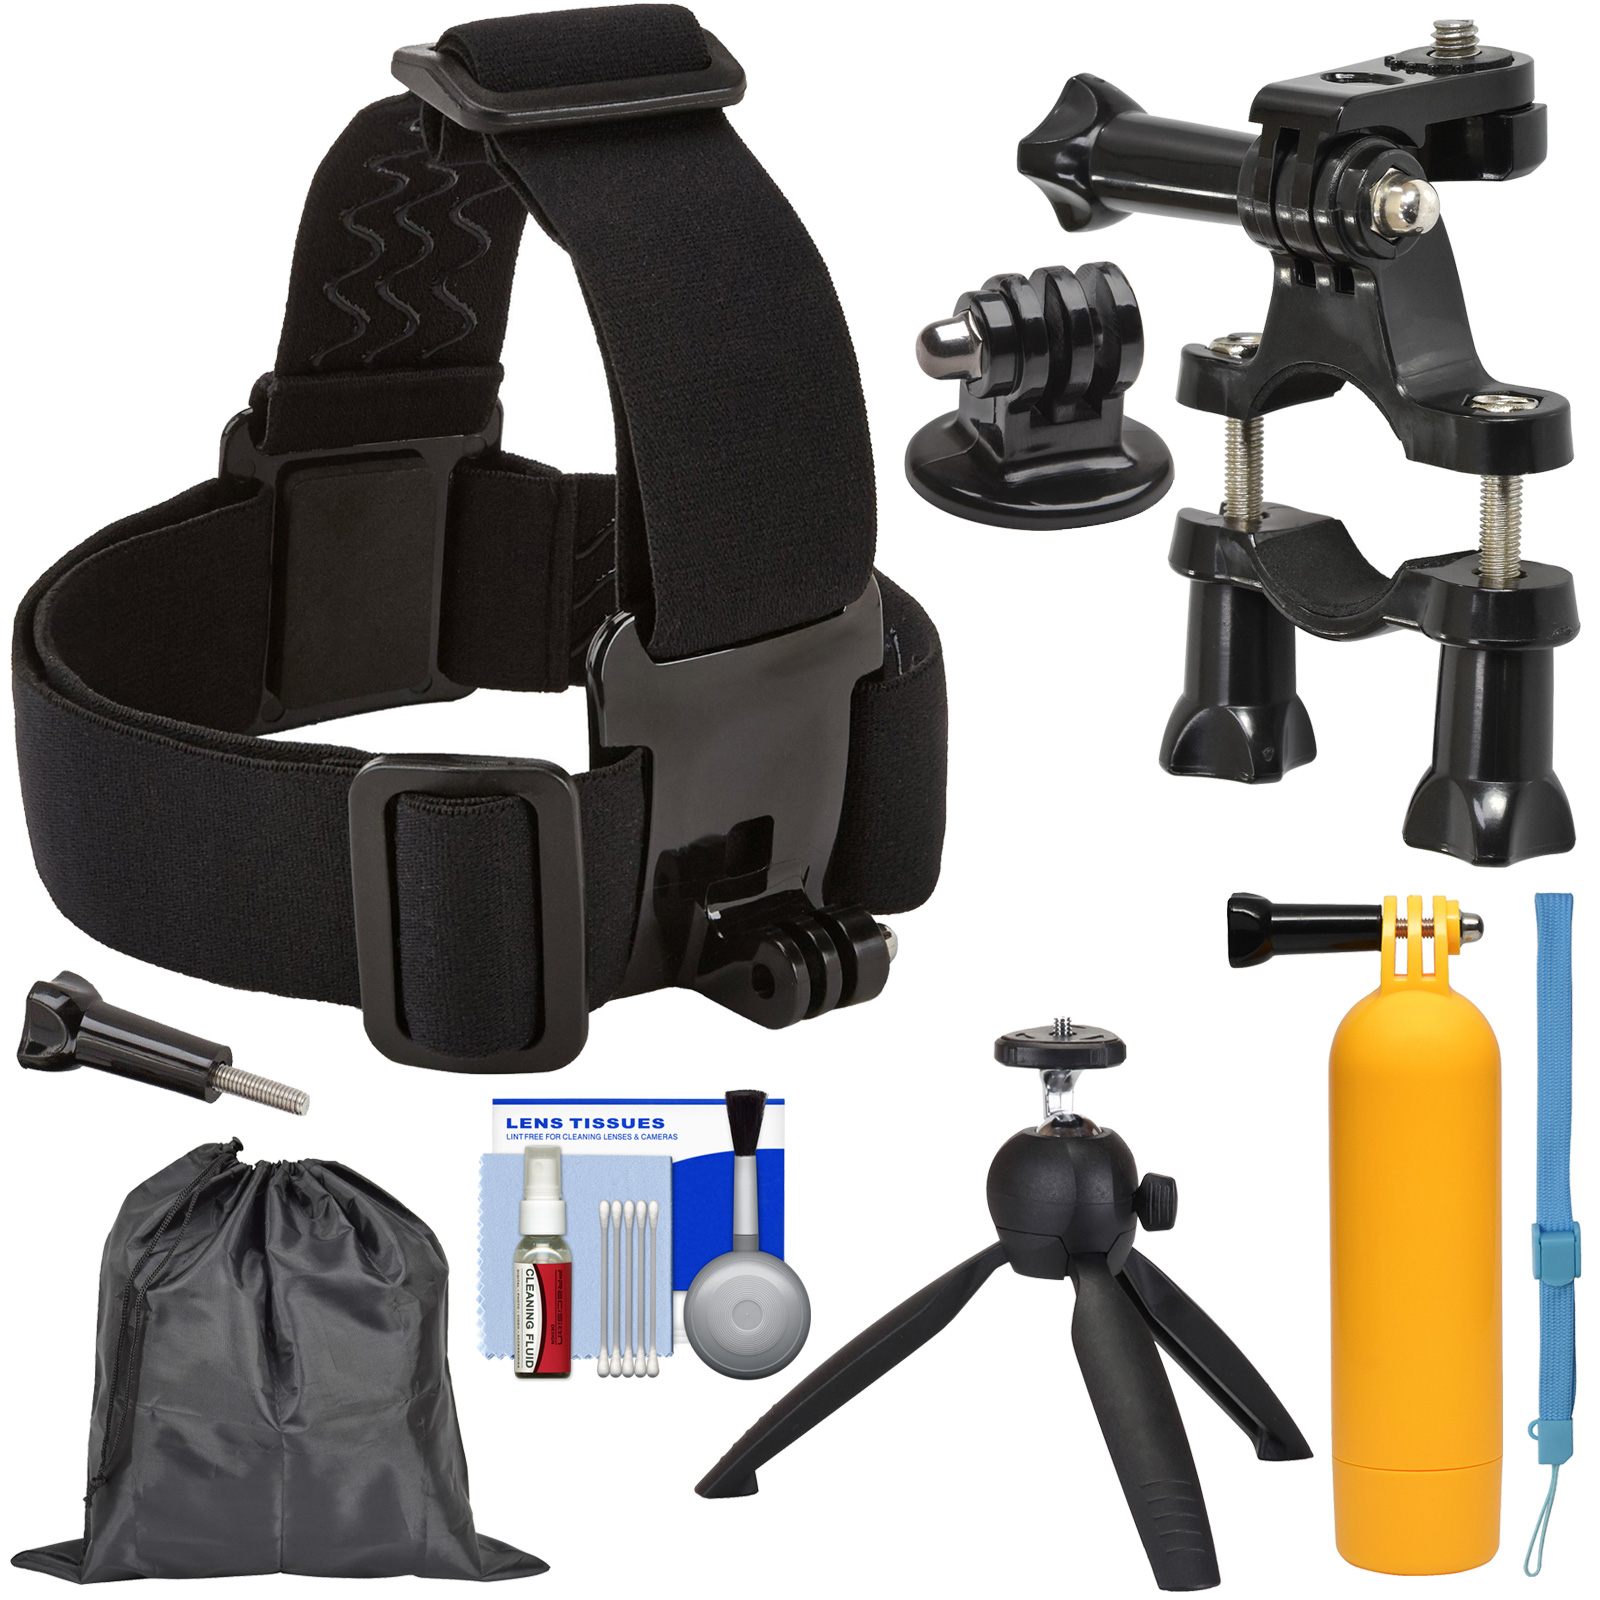 Sunpak Action Camera Head Strap Mount with Bike Handlebar Mount + Buoy Hand Grip + Wrist Strap + Tripod + Adapter + Pouch + Kit